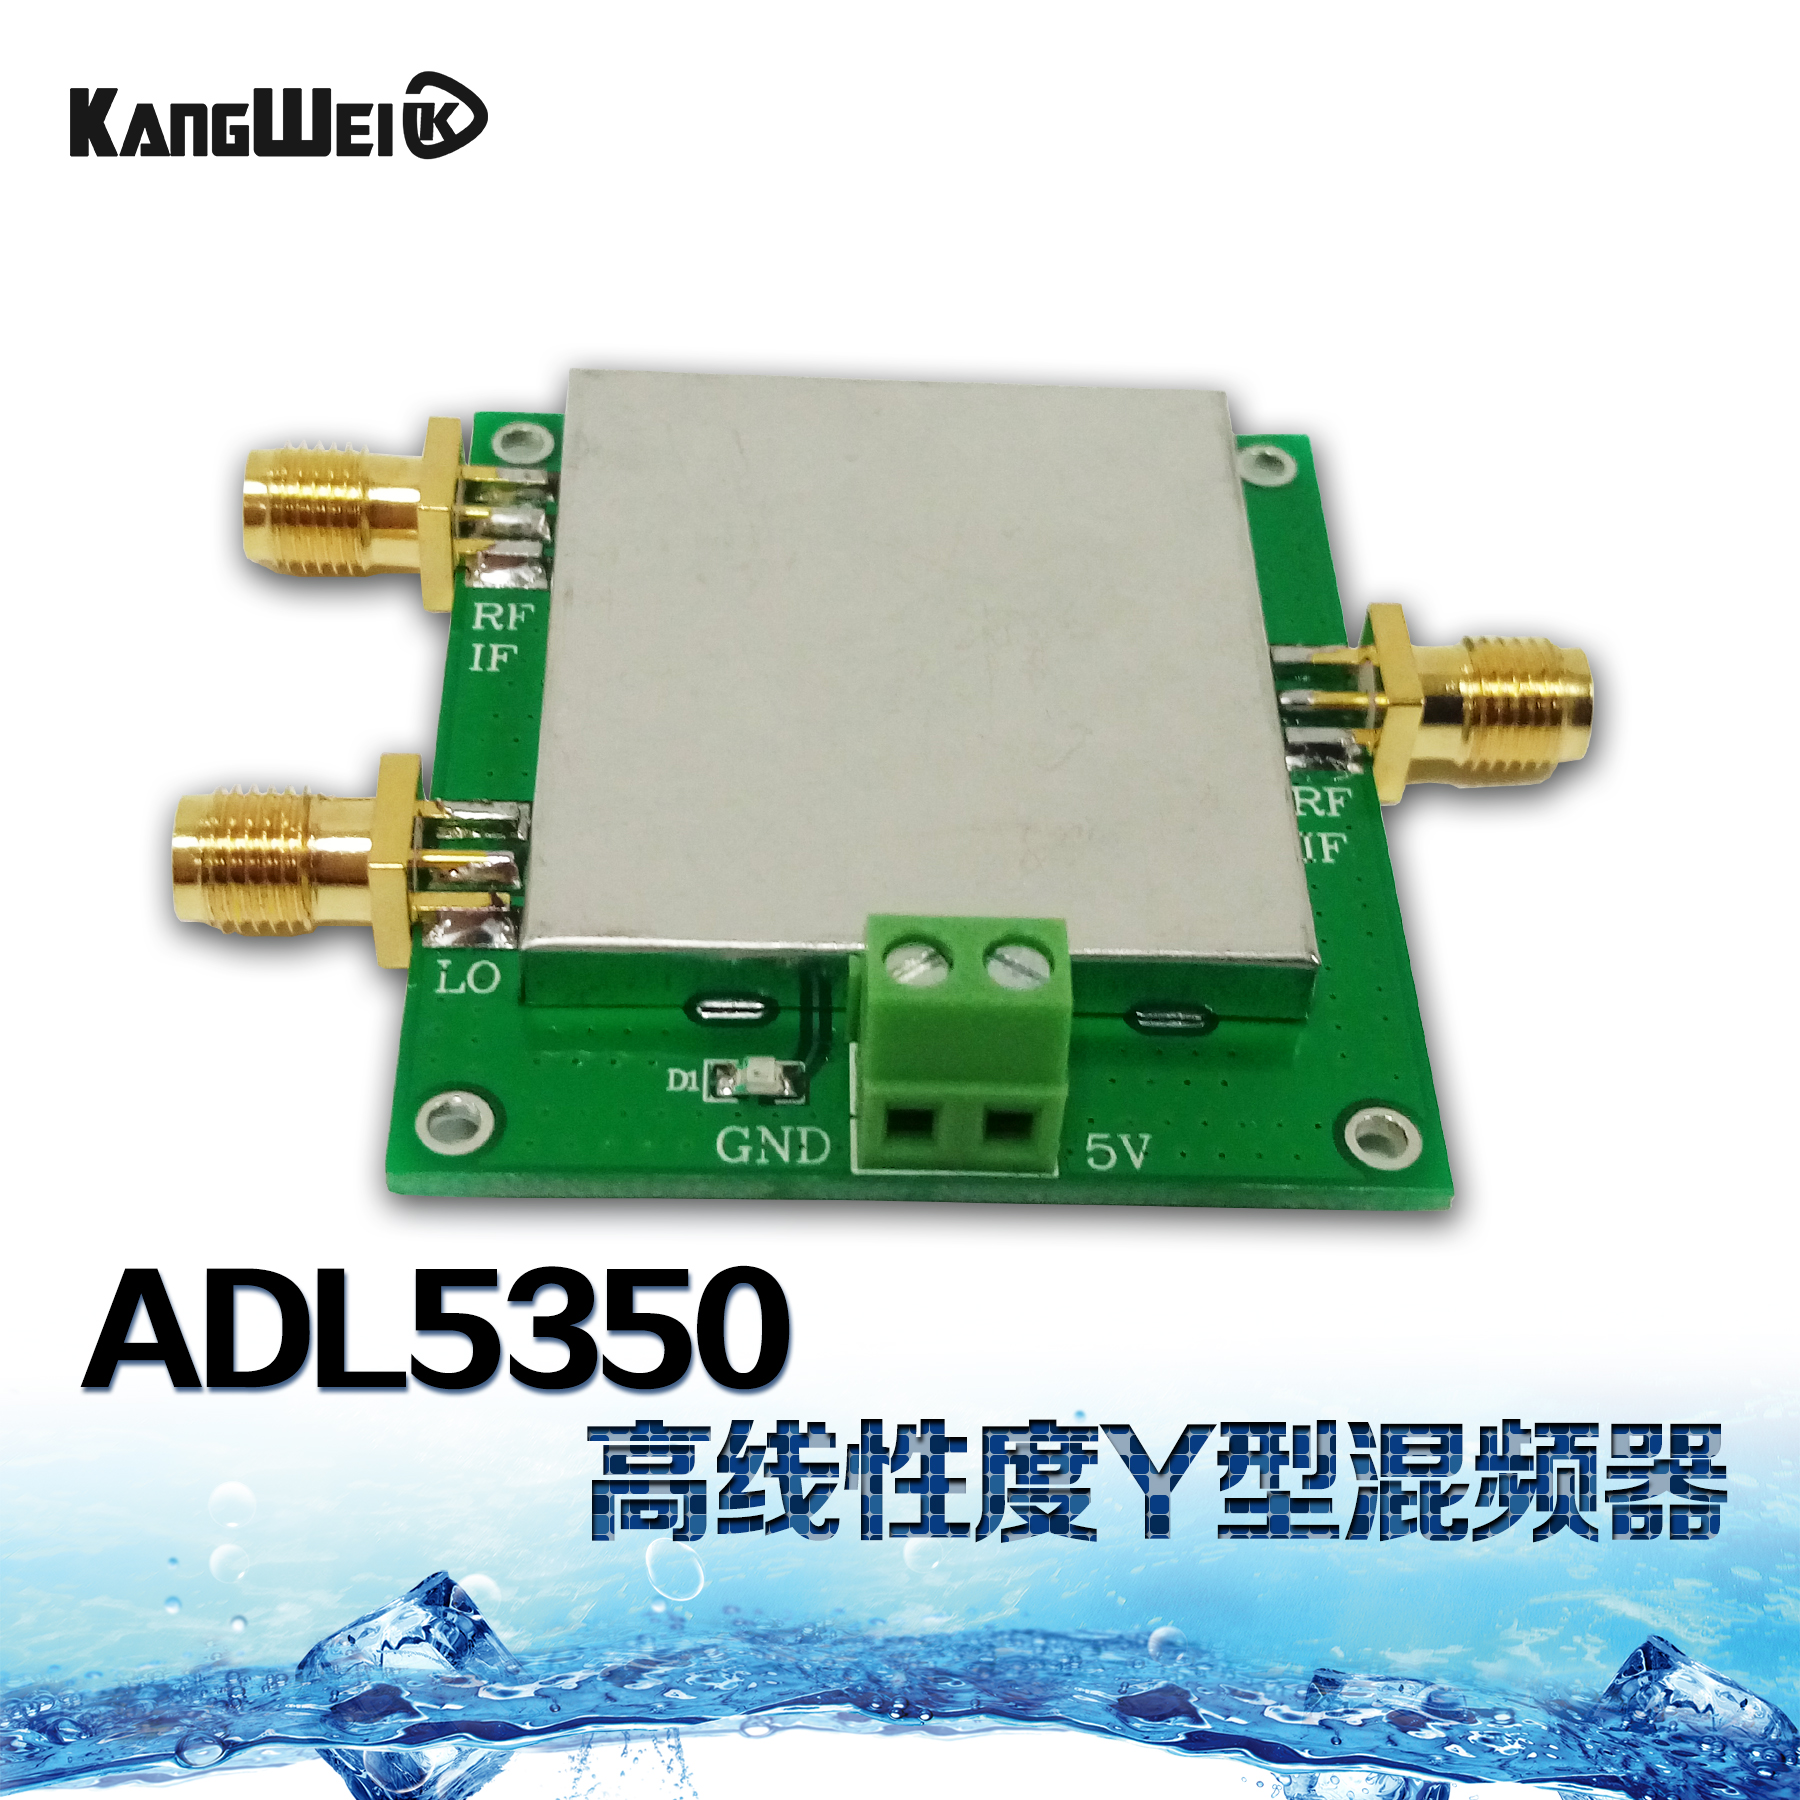 ADL5350-EVALZ Low Frequency to 4GHz High Linearity Y Mixer ADL5350 Module xn297l 2 4ghz wireless module